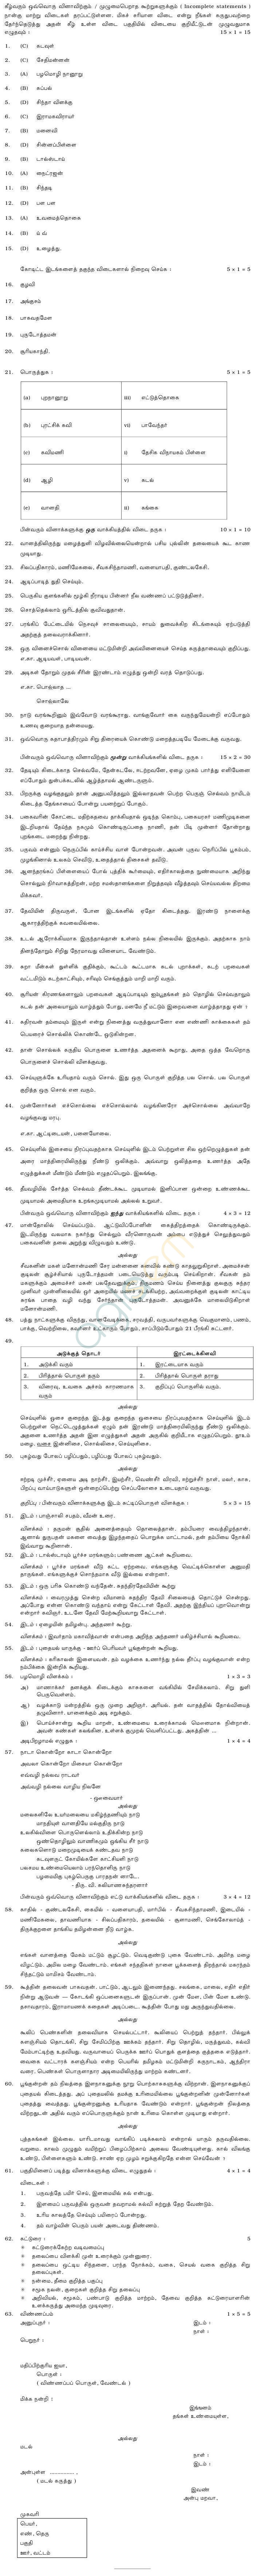 Karnataka SSLC Solved Question Paper April 2014 - Tamil